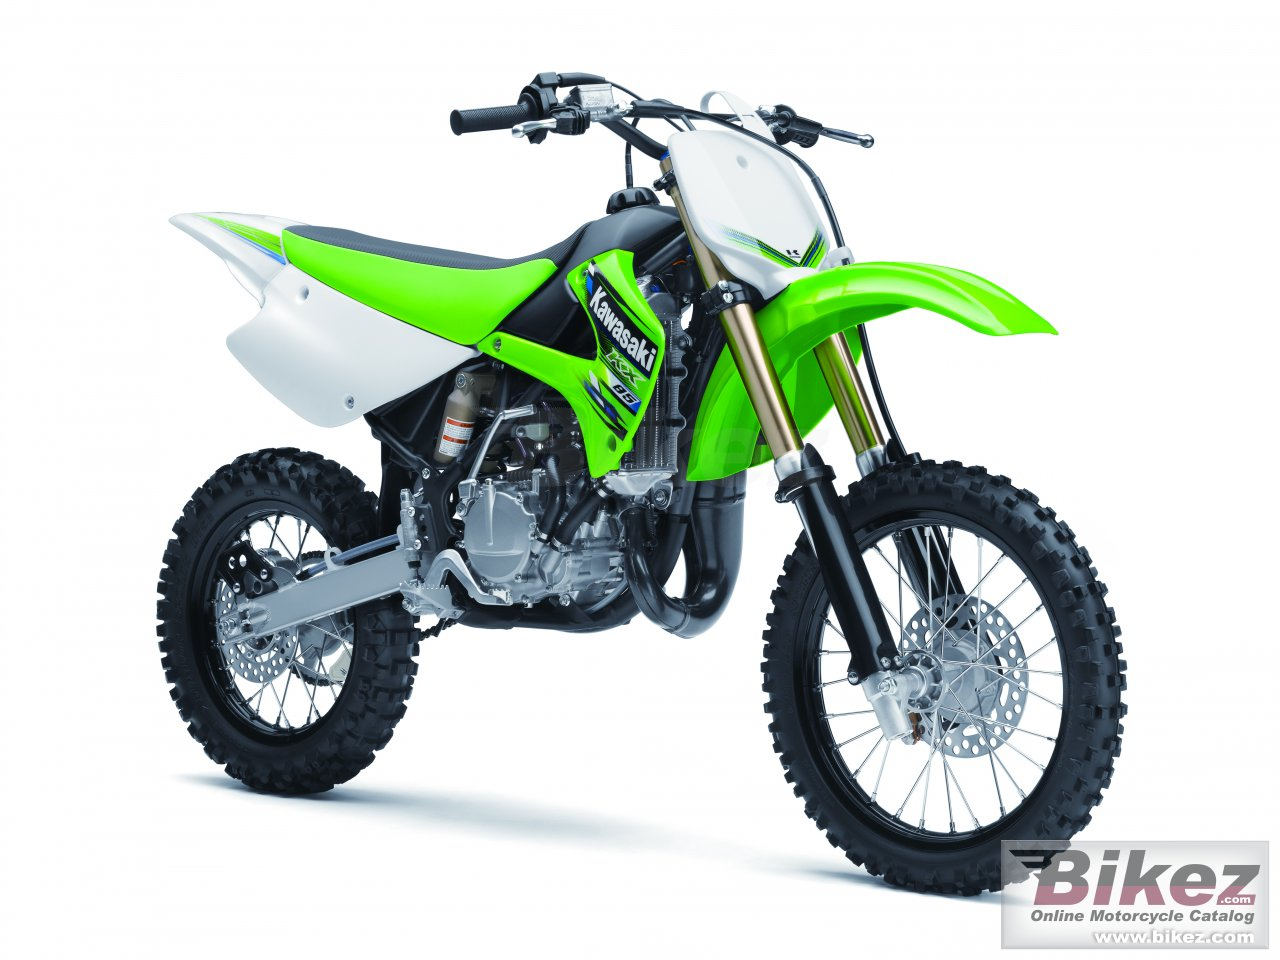 Big Kawasaki kx 85 picture and wallpaper from Bikez.com